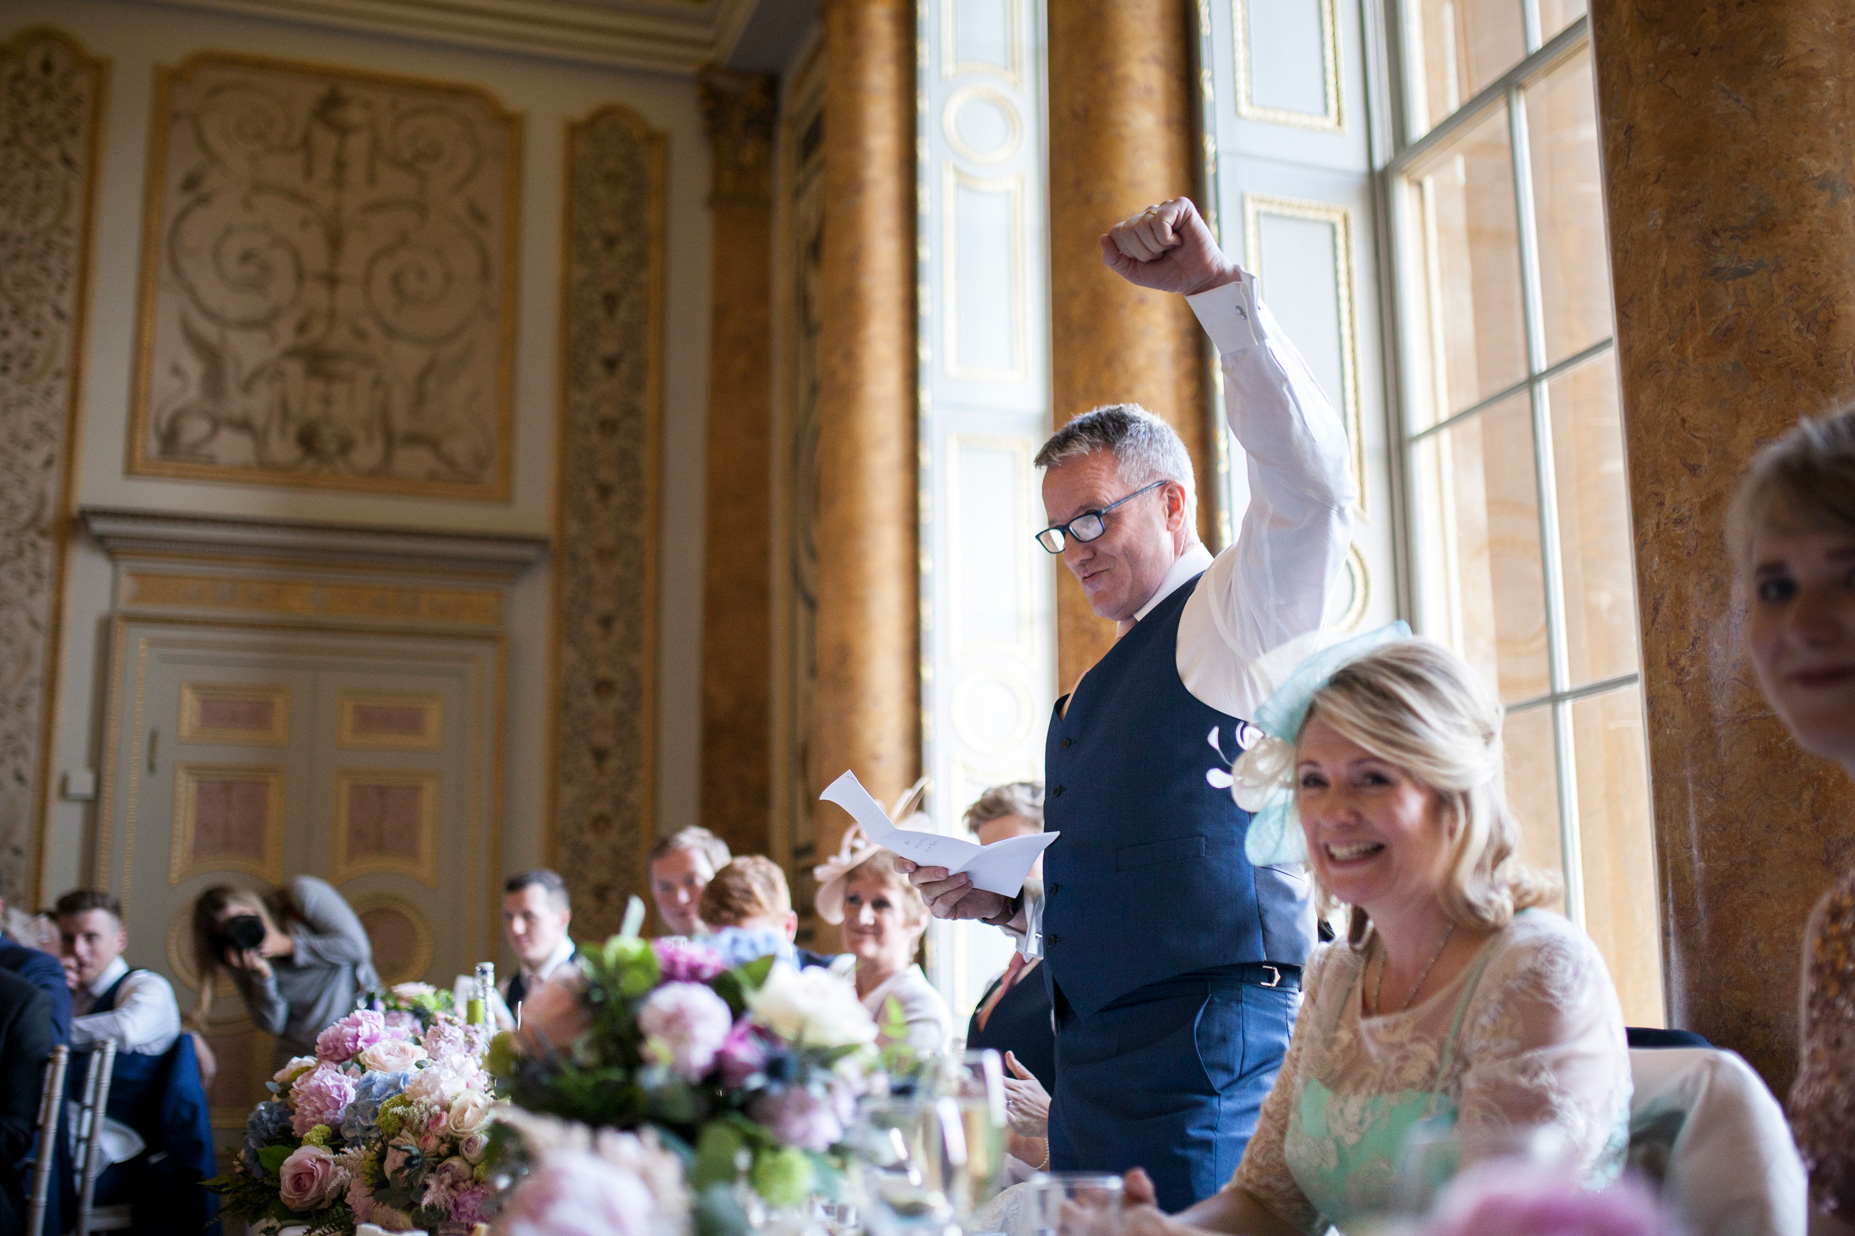 Speeches, Father of the Bride, celebration,